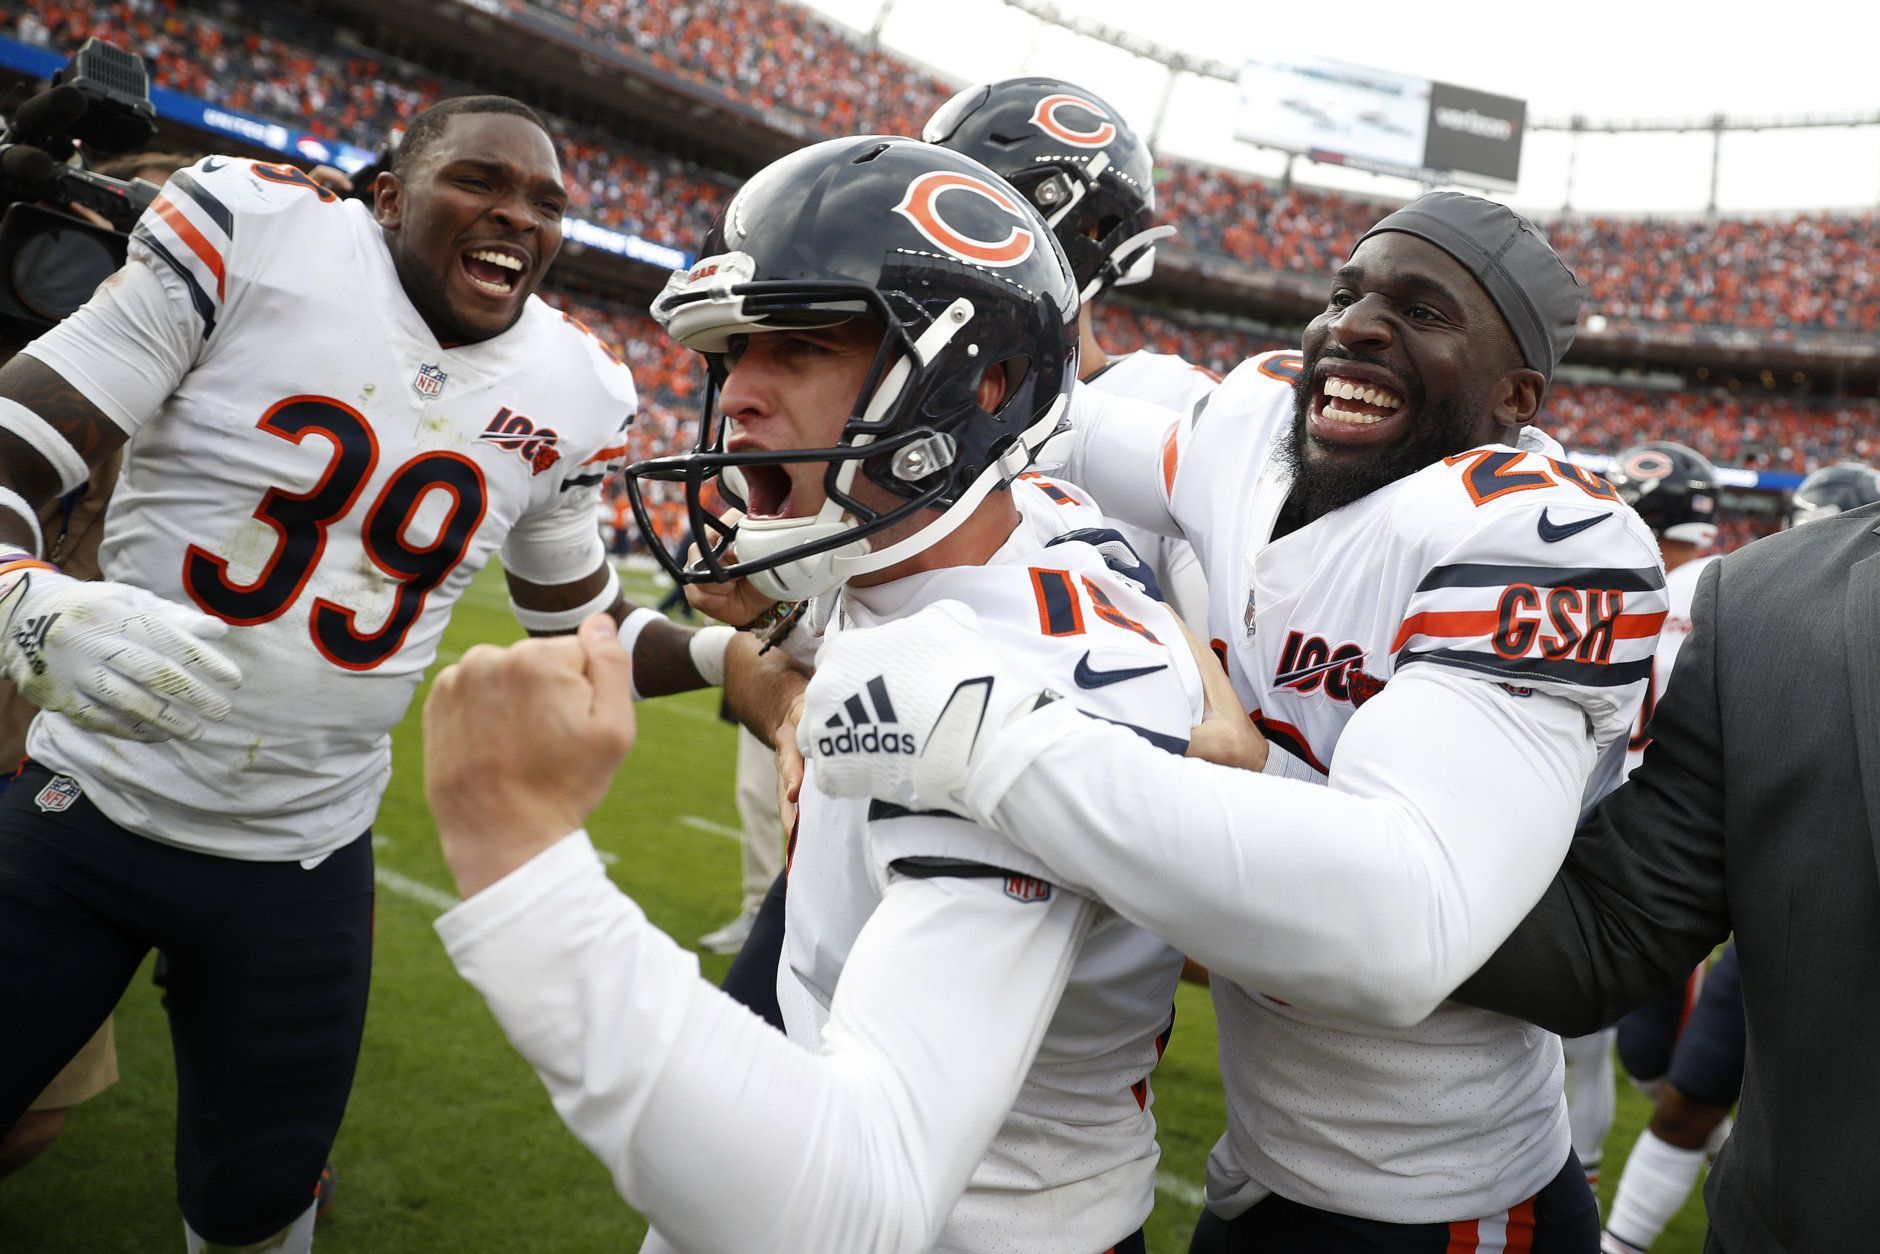 "<p><b><i>Bears 16</i></b><br /> <b><i>Broncos 14</i></b></p> <p>It was a crazy ending to the first game in which Denver&#8217;s stadium is christened with <a href=""https://www.9news.com/article/sports/nfl/denver-broncos/mike-klis/denver-broncos-stadium-new-name-empower-field-at-mile-high/73-c0671177-03a1-461a-8161-50ba7e3ac155"">a crazy new name</a>. And just like that, Chicago has a (momentarily) clutch kicker to help lift a lagging offense to 1-1 with a virtual prime time bye against the notoriously-terrible-on-MNF Redskins.</p>"